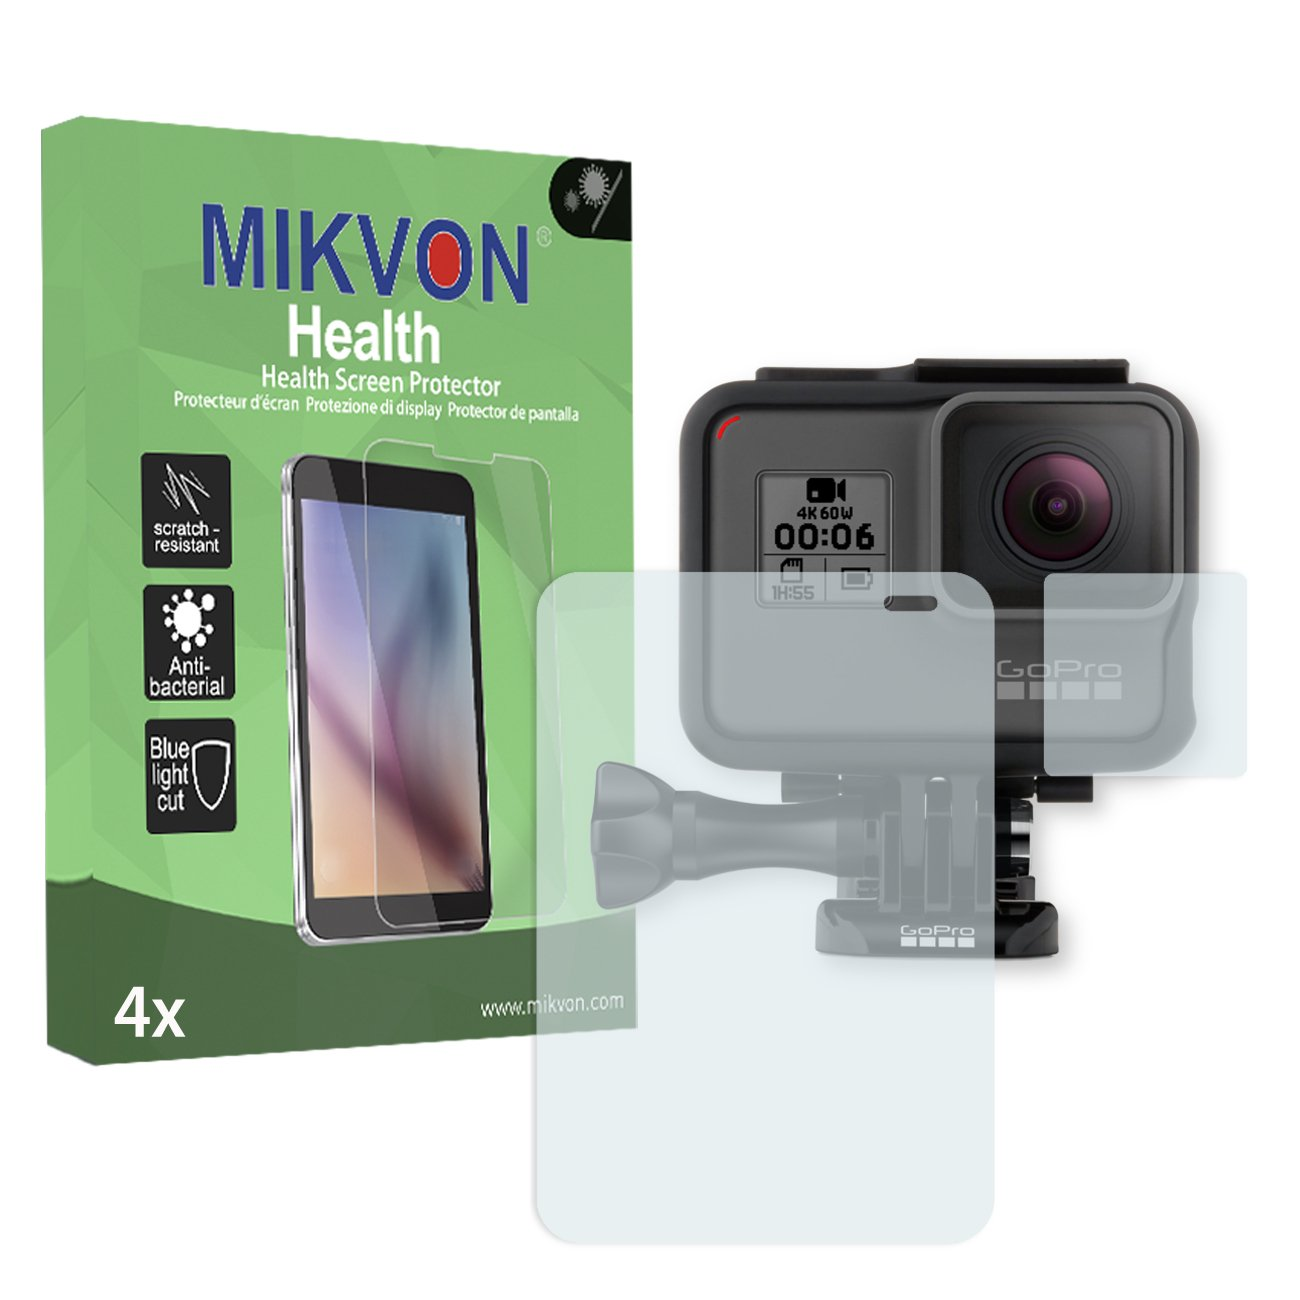 4x Mikvon Health Screen Protector for GoPro Hero 6 Antibacterial BlueLightCut Foil - Retail Package with accessories